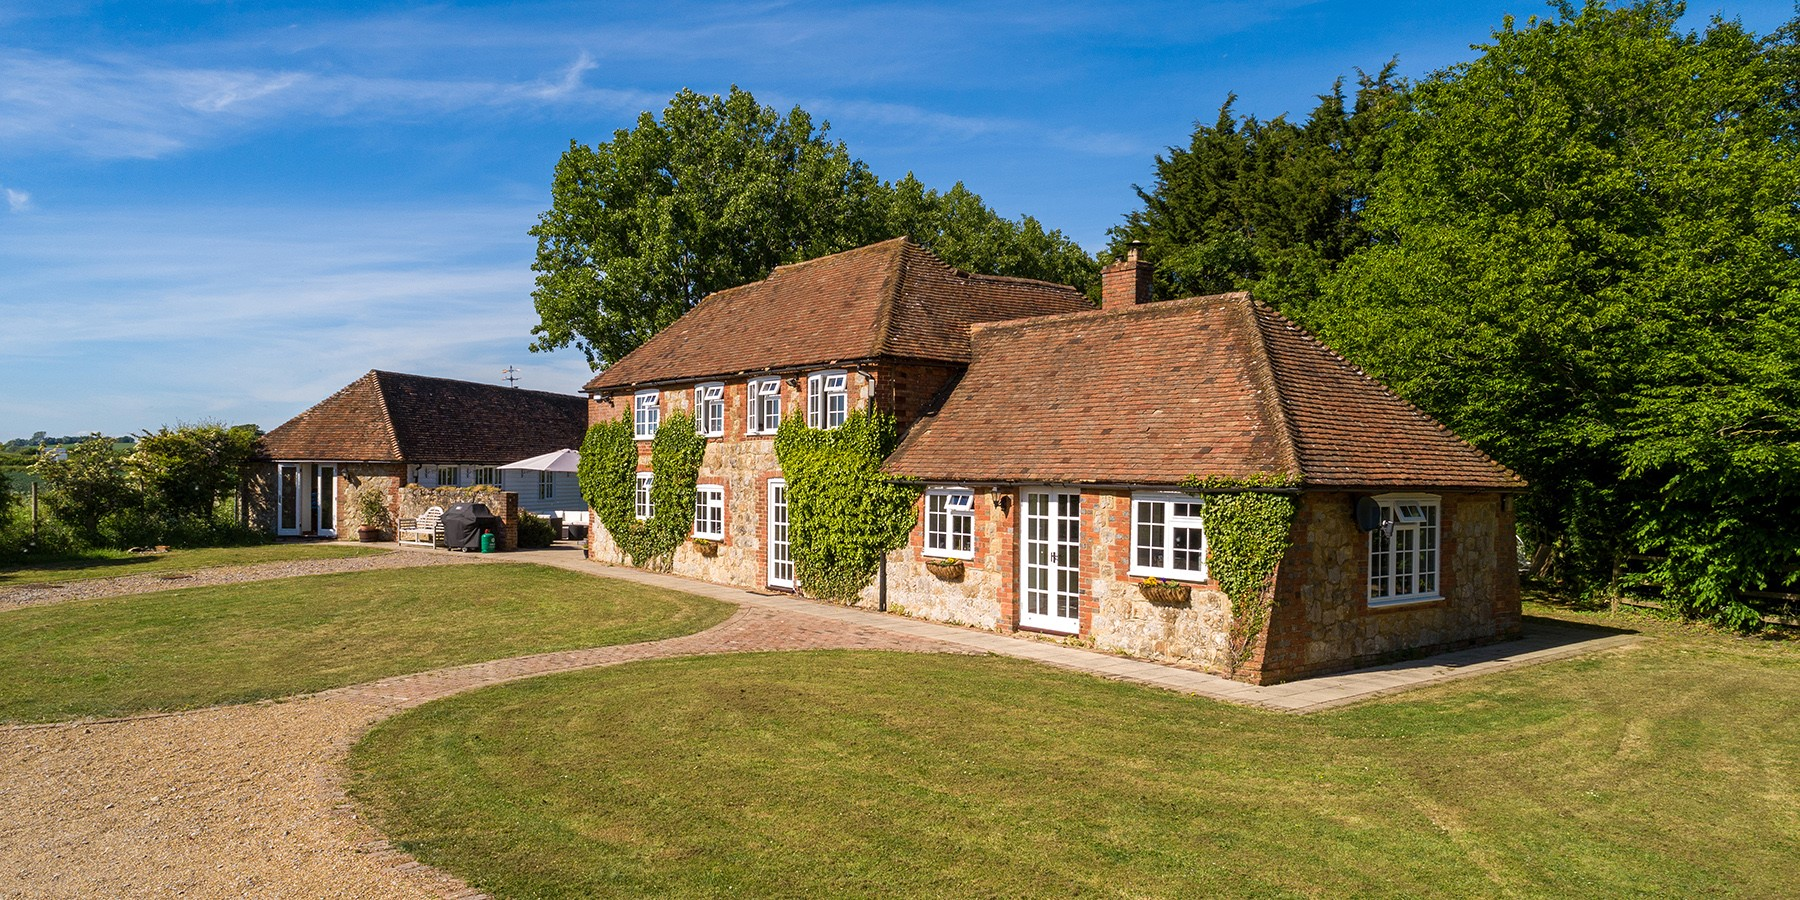 Little Netters - Converted Oast with Renovated Annexe for sale